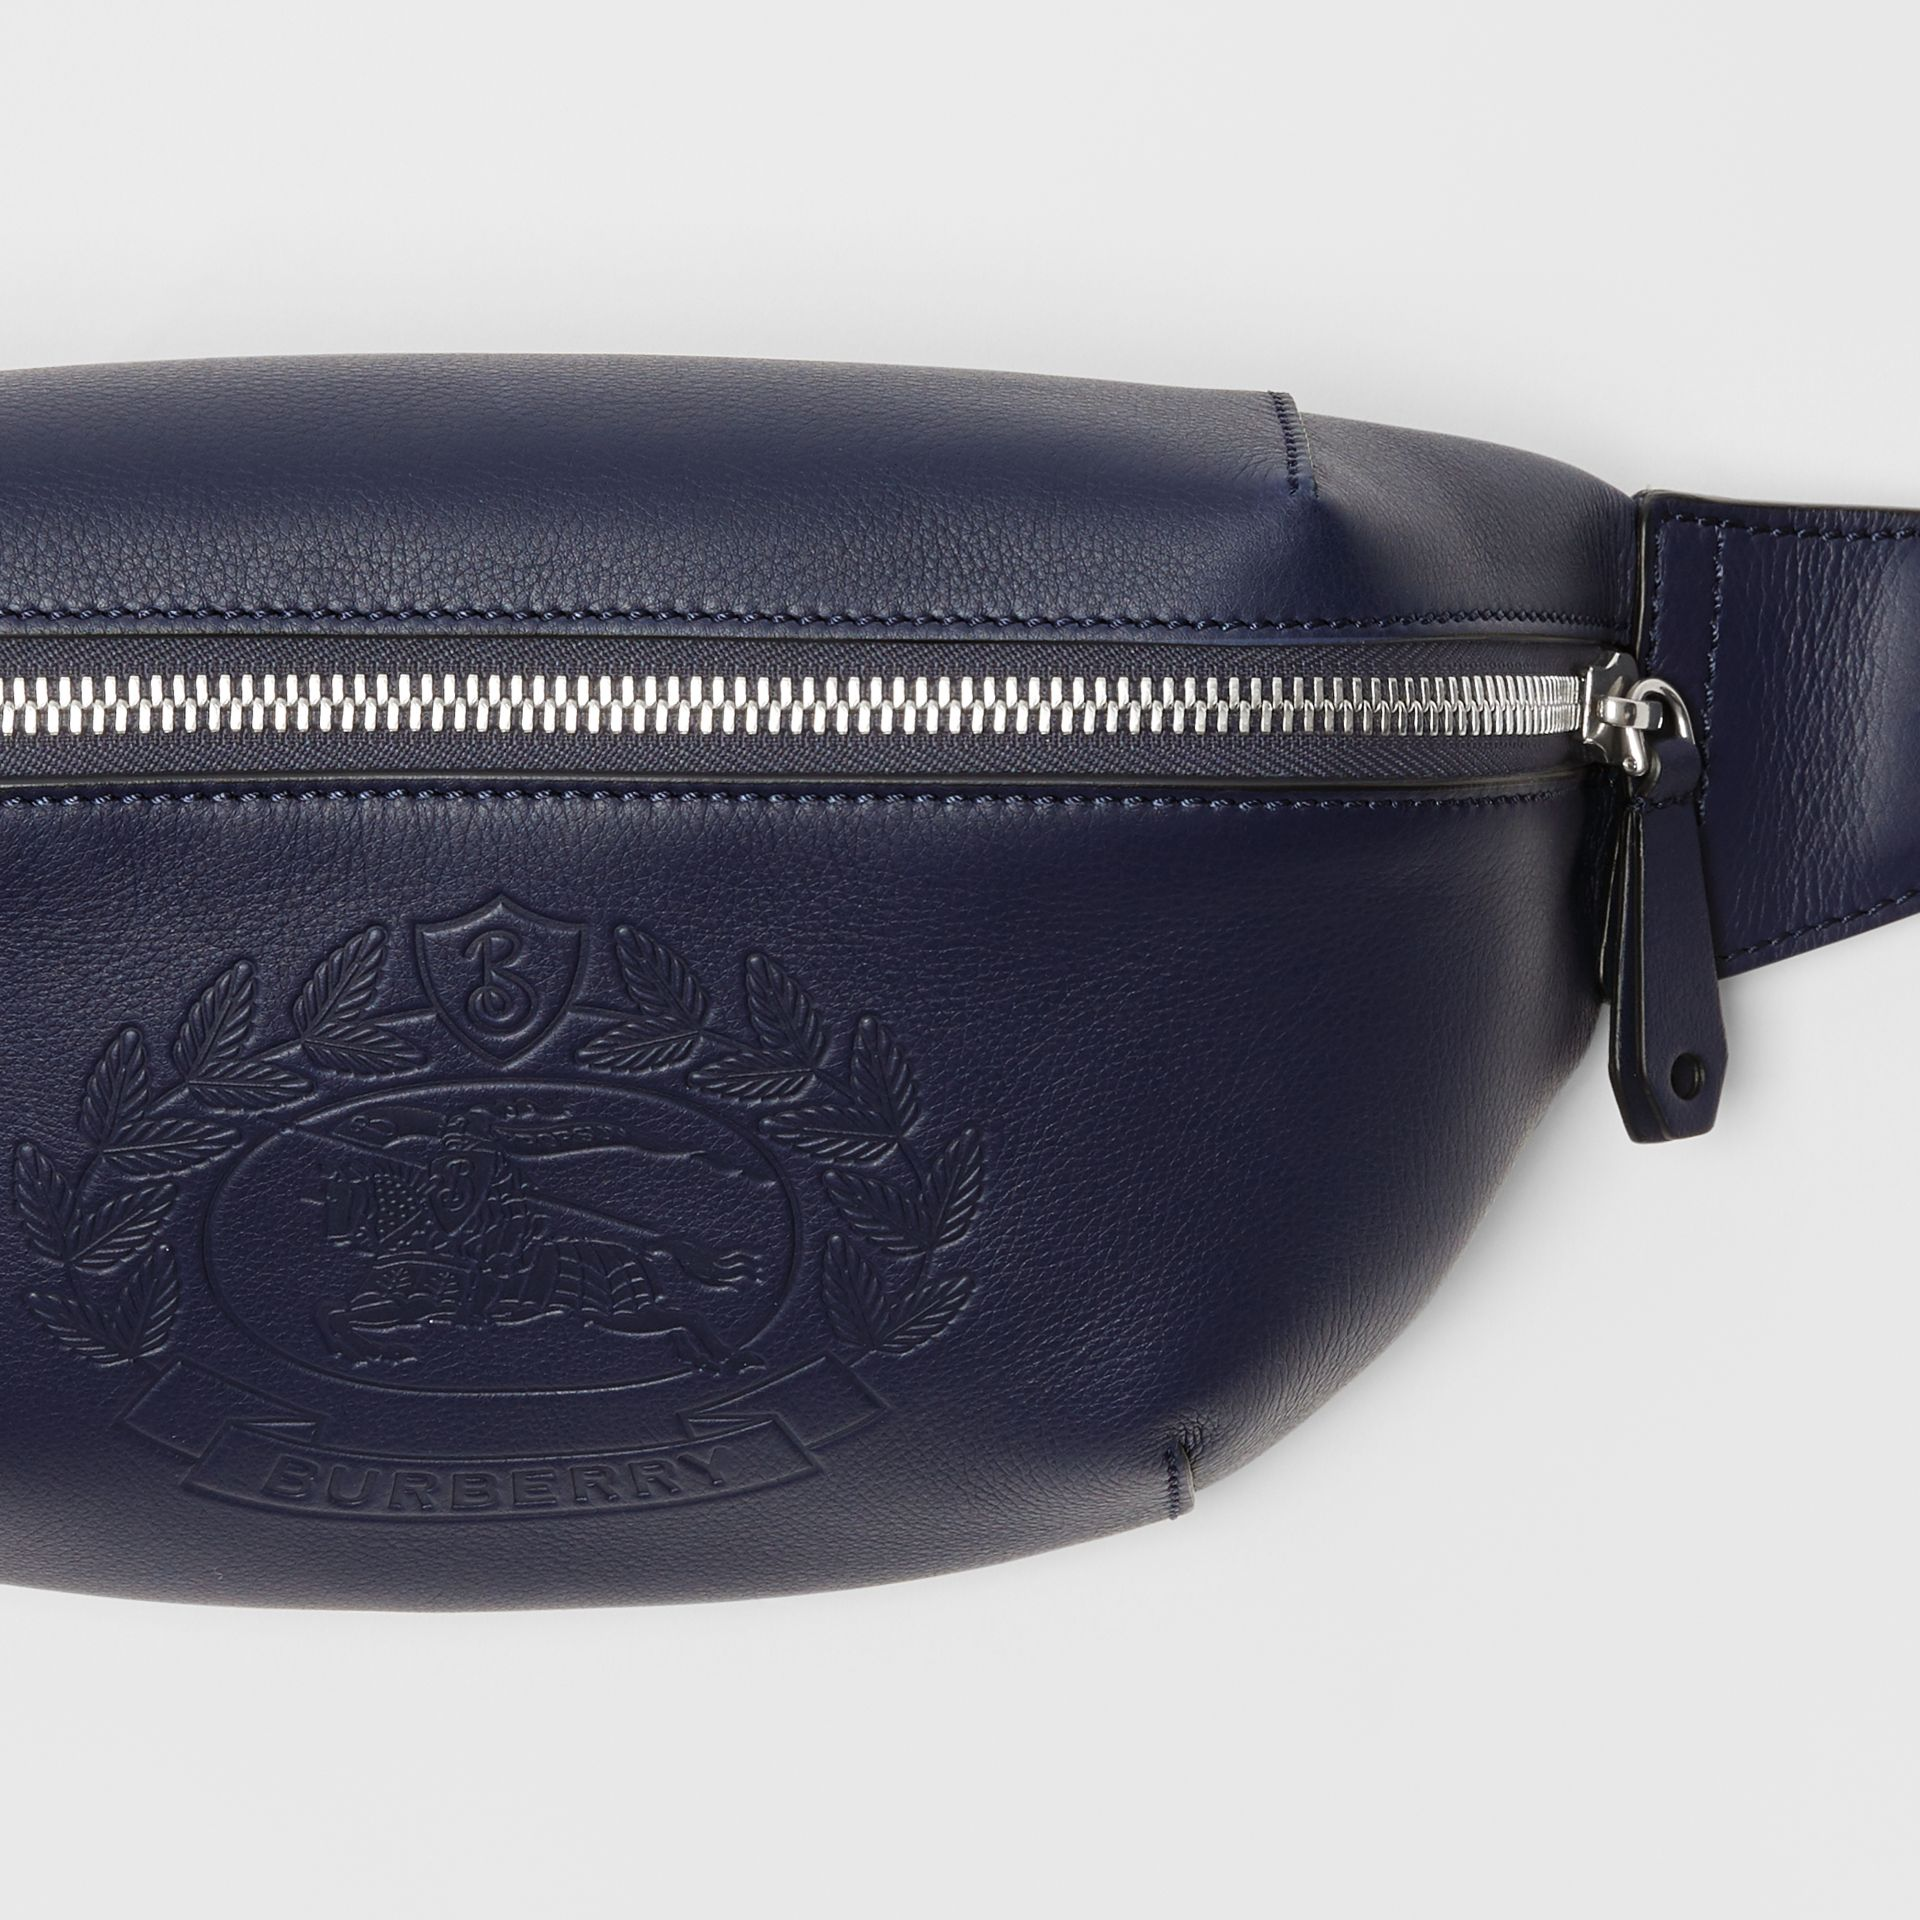 Medium Embossed Crest Leather Bum Bag in Regency Blue | Burberry - gallery image 1